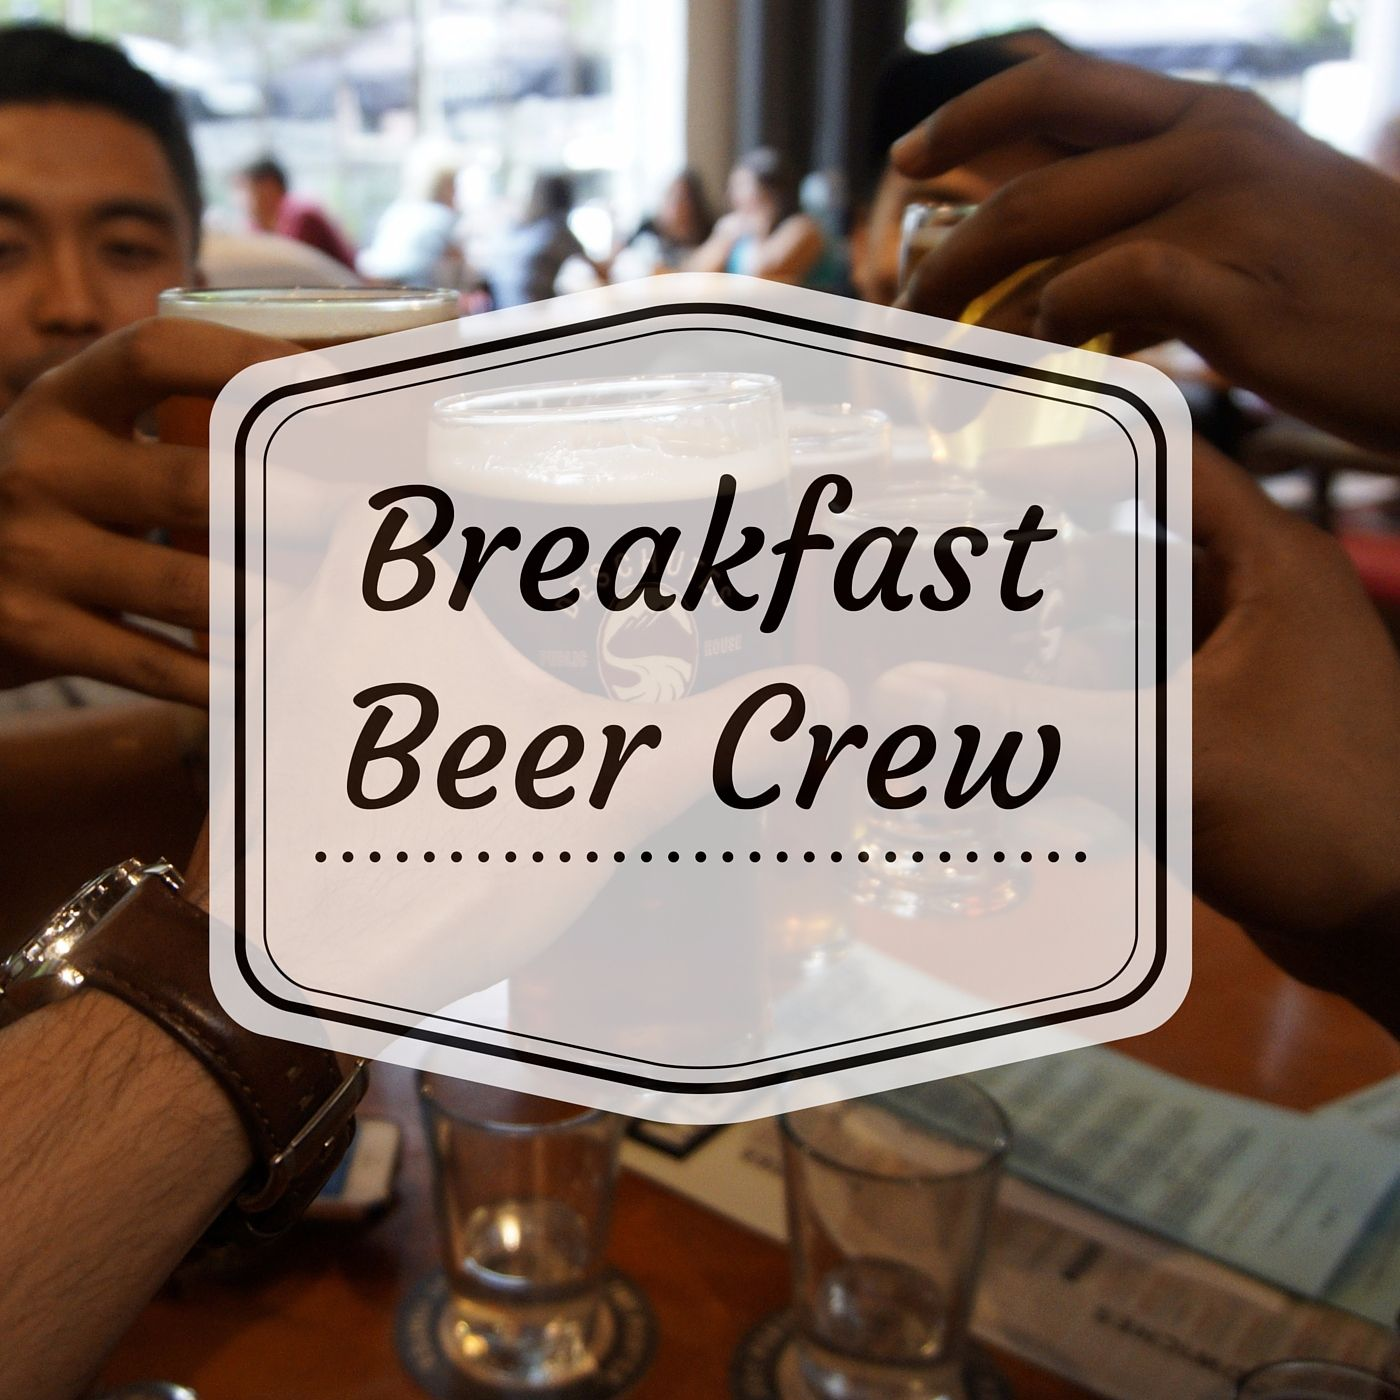 Breakfast Beer Crew